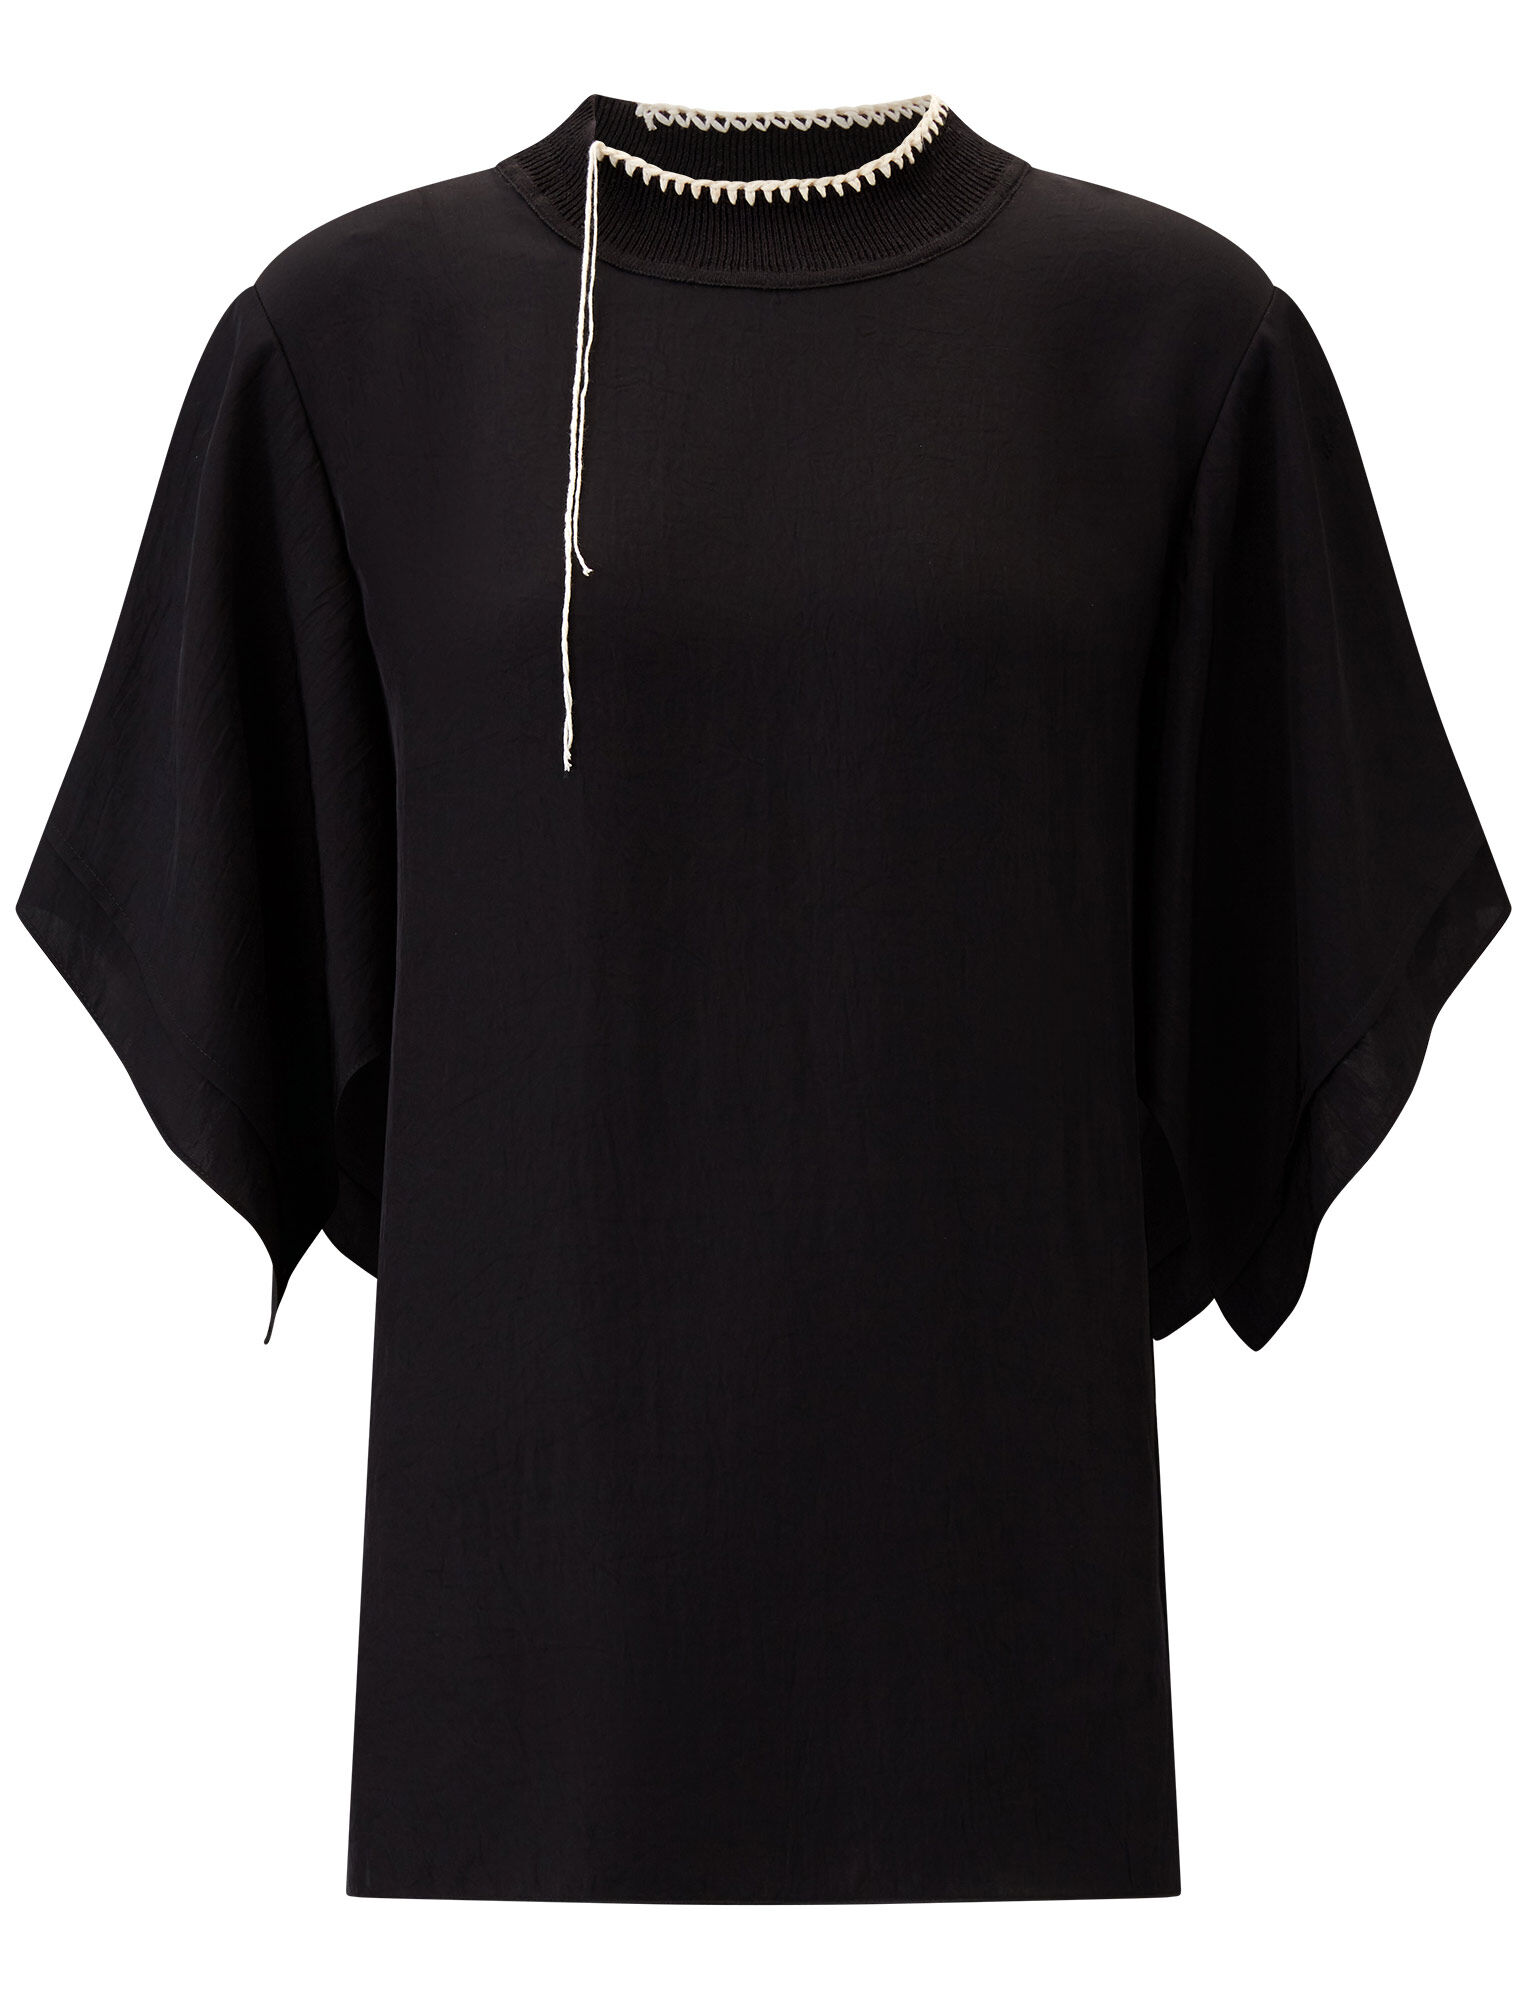 Joseph, Baila Washed Twill Blouse, in BLACK